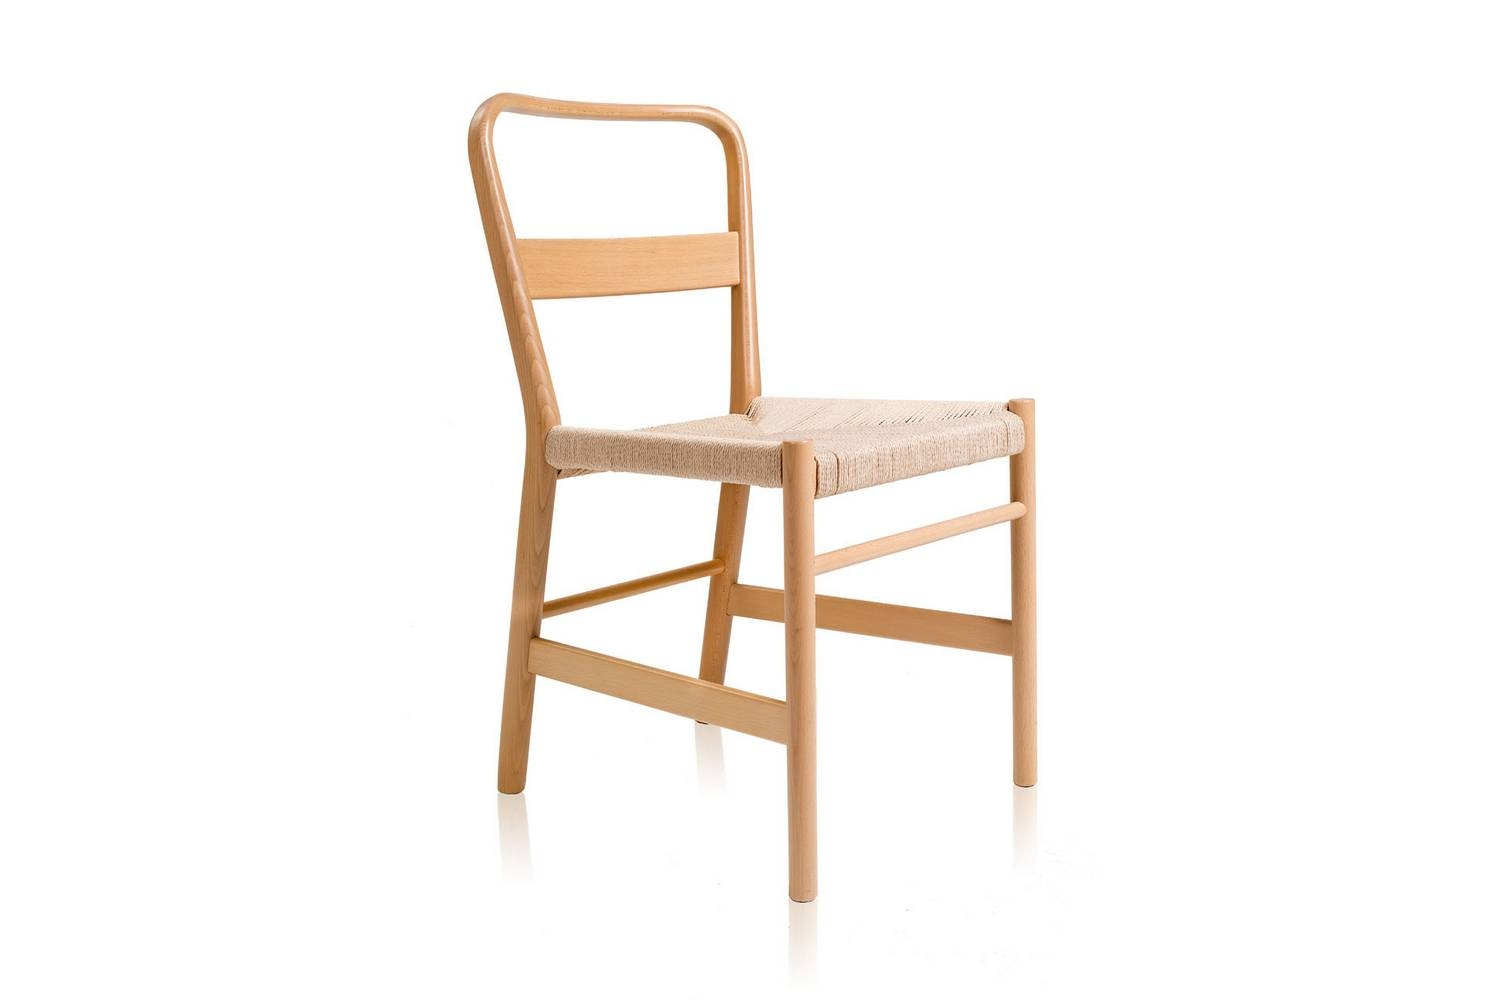 Strauss Chair by Gebruder Thonet Vienna for Wiener GTV Design